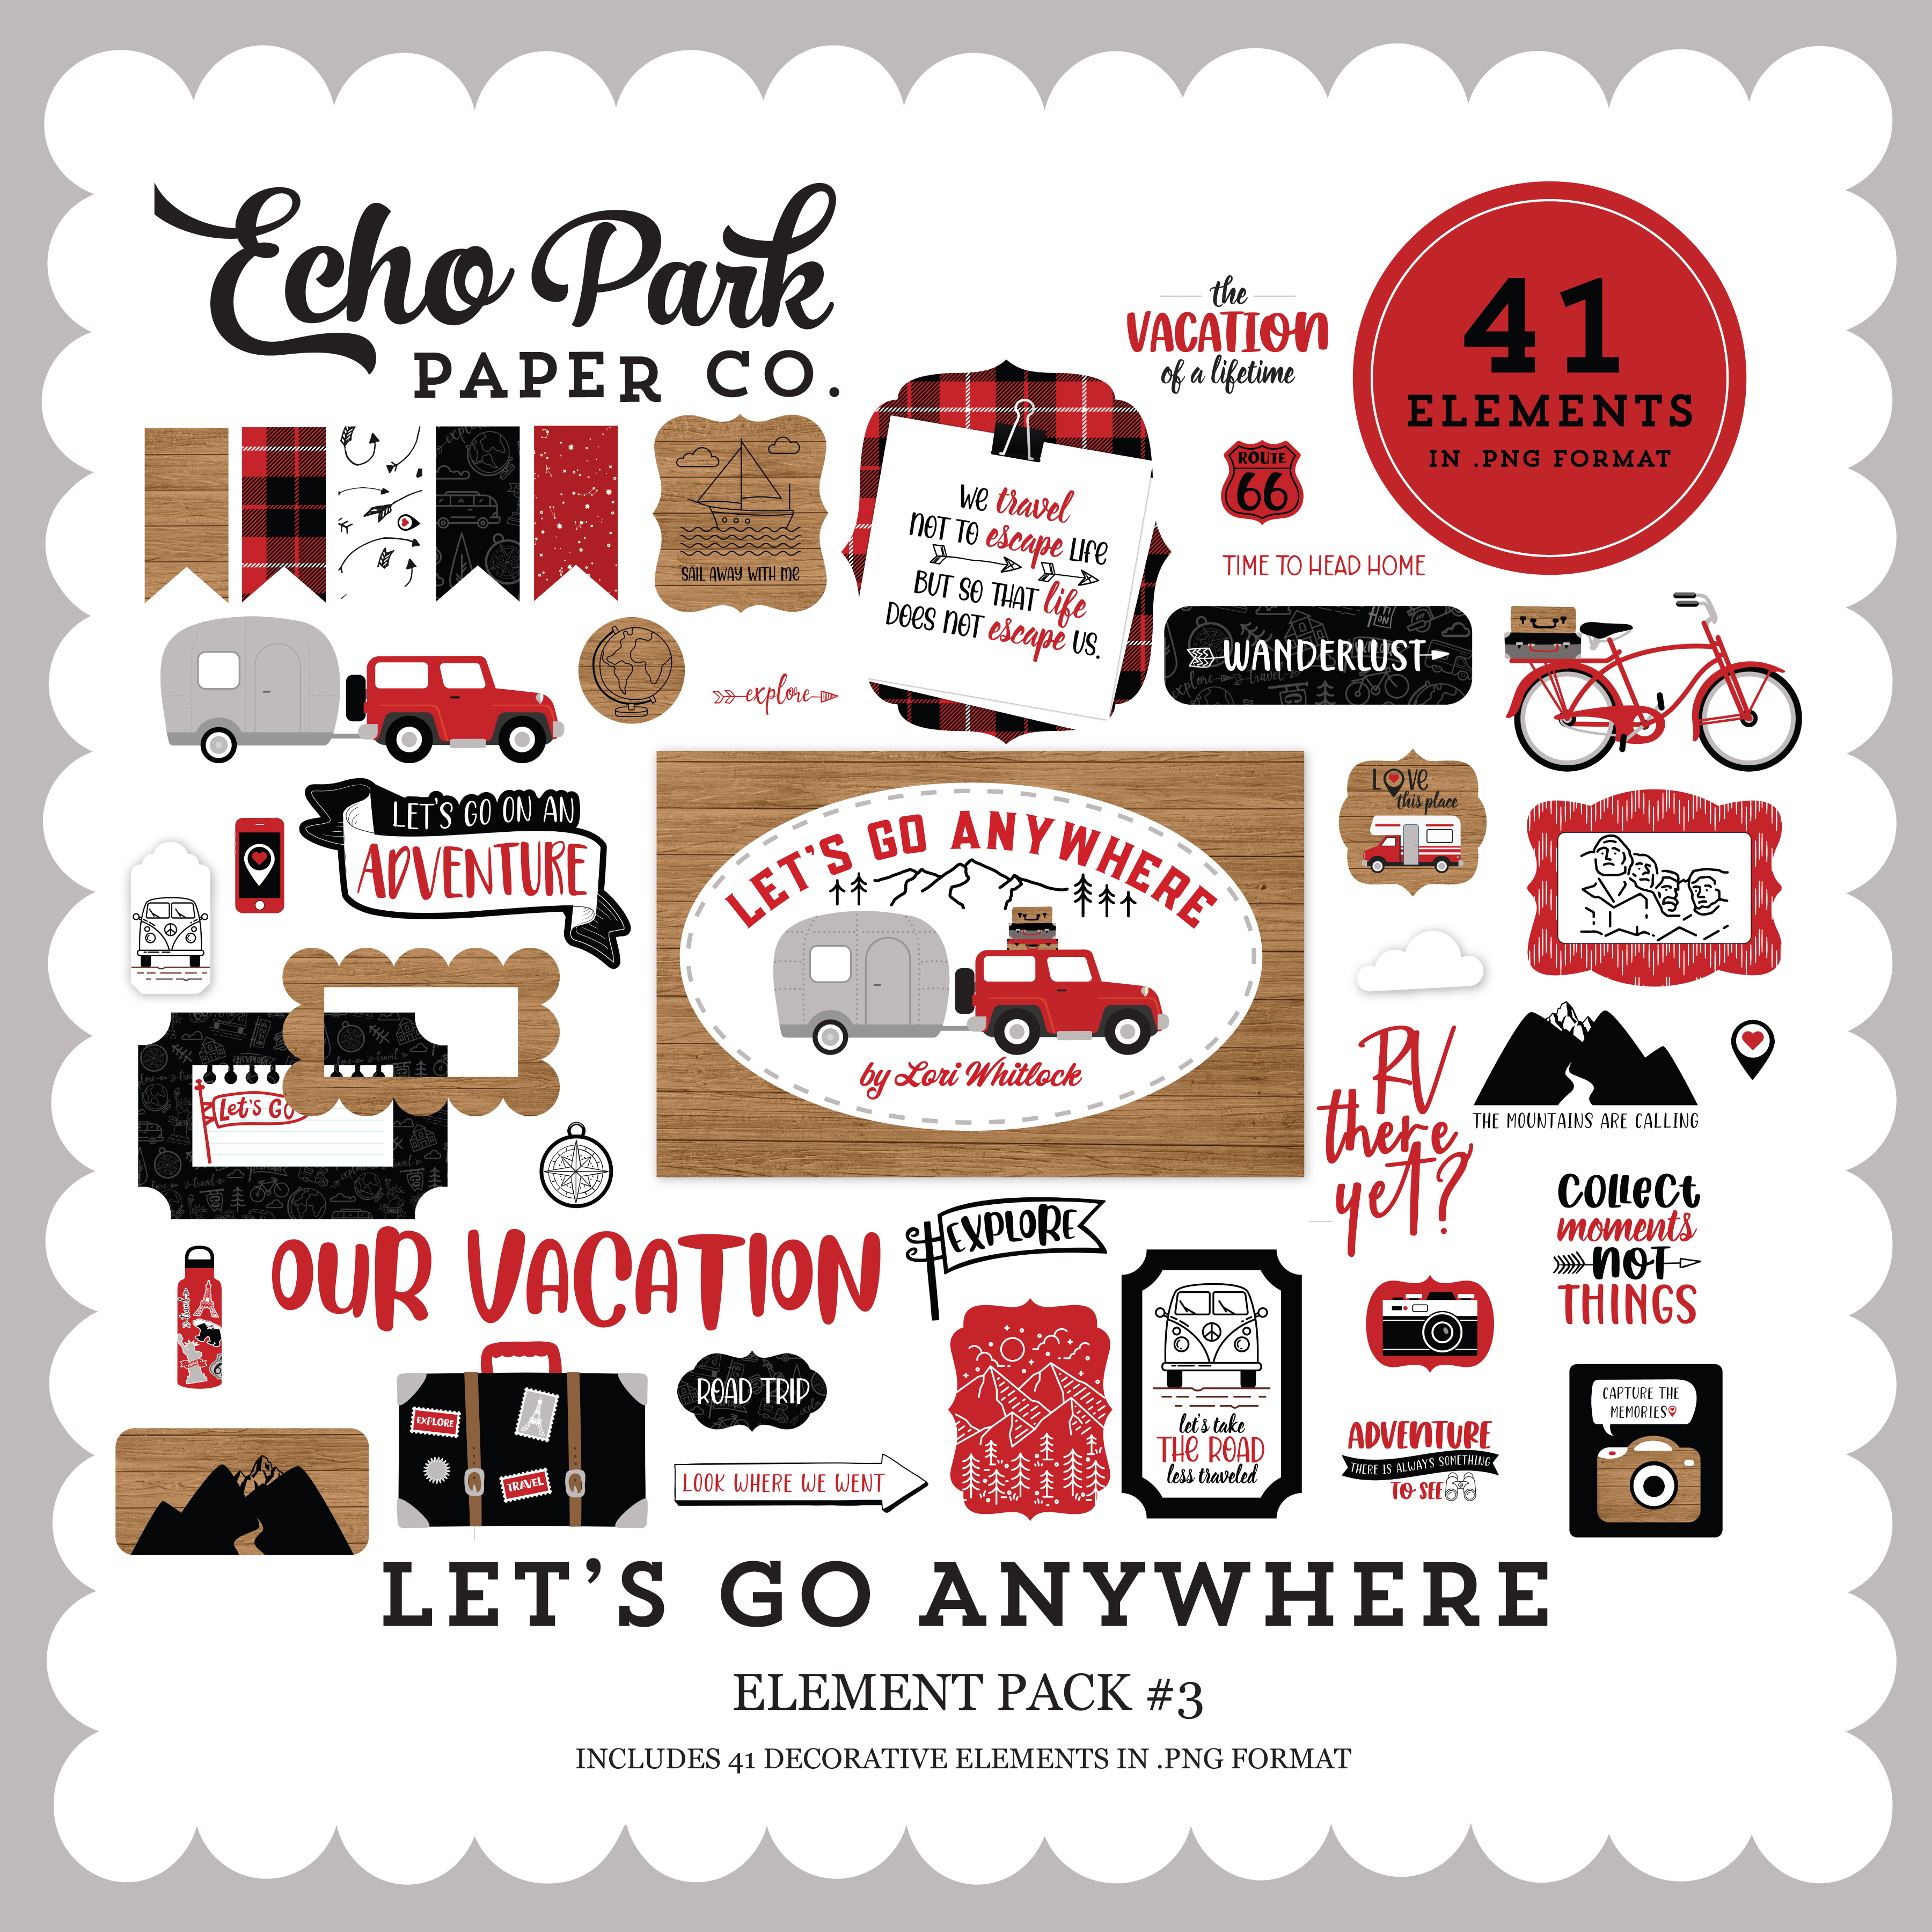 Let's Go Anywhere Element Pack #3